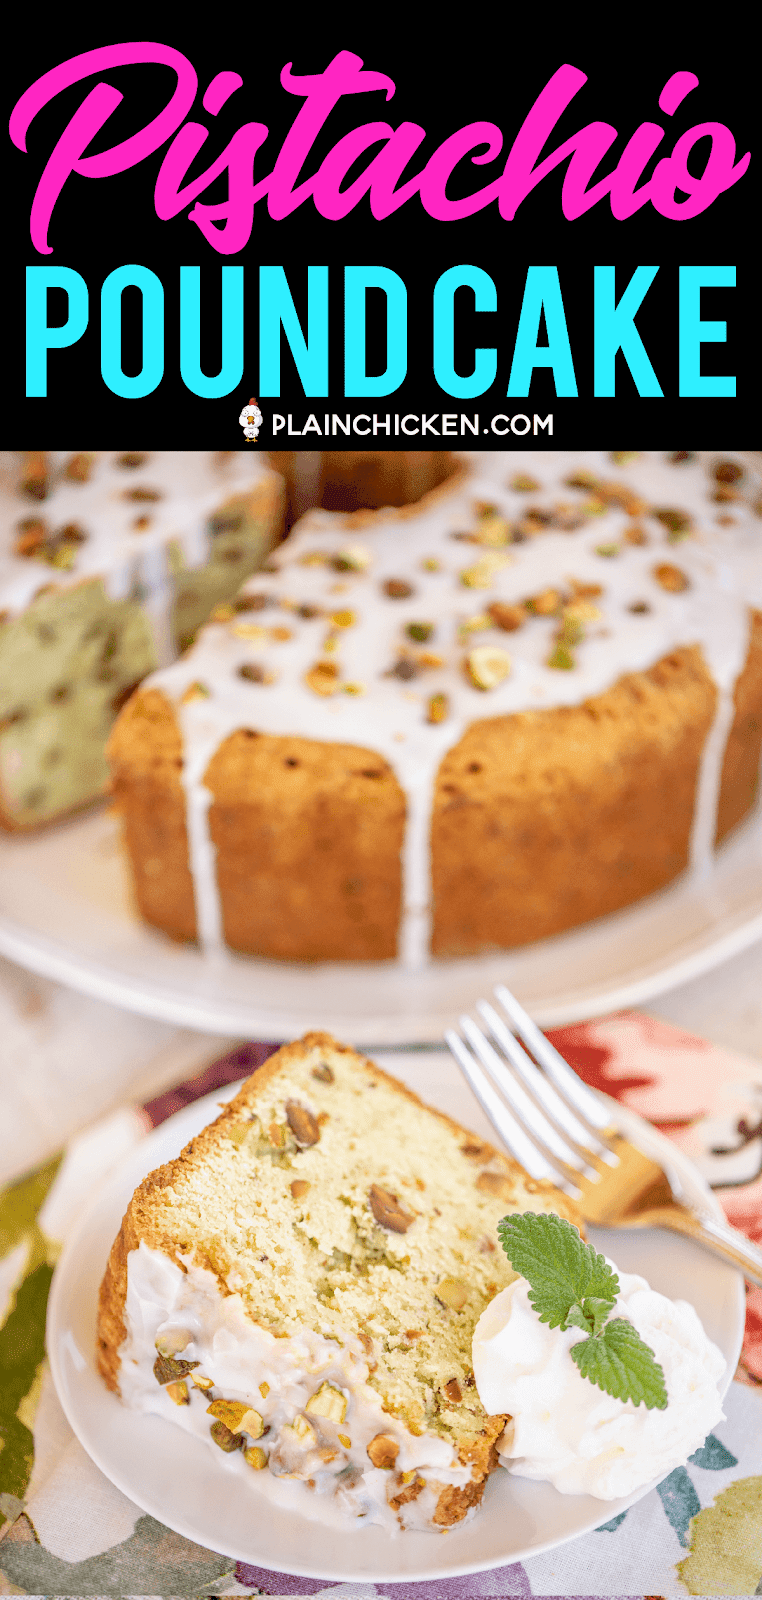 Pistachio Pound Cake The Most Amazing Pound Cake I Ve Ever Eaten So Easy And Delicious Flour Eggs Sour Cream P Sour Cream Pound Cake Pound Cake Desserts